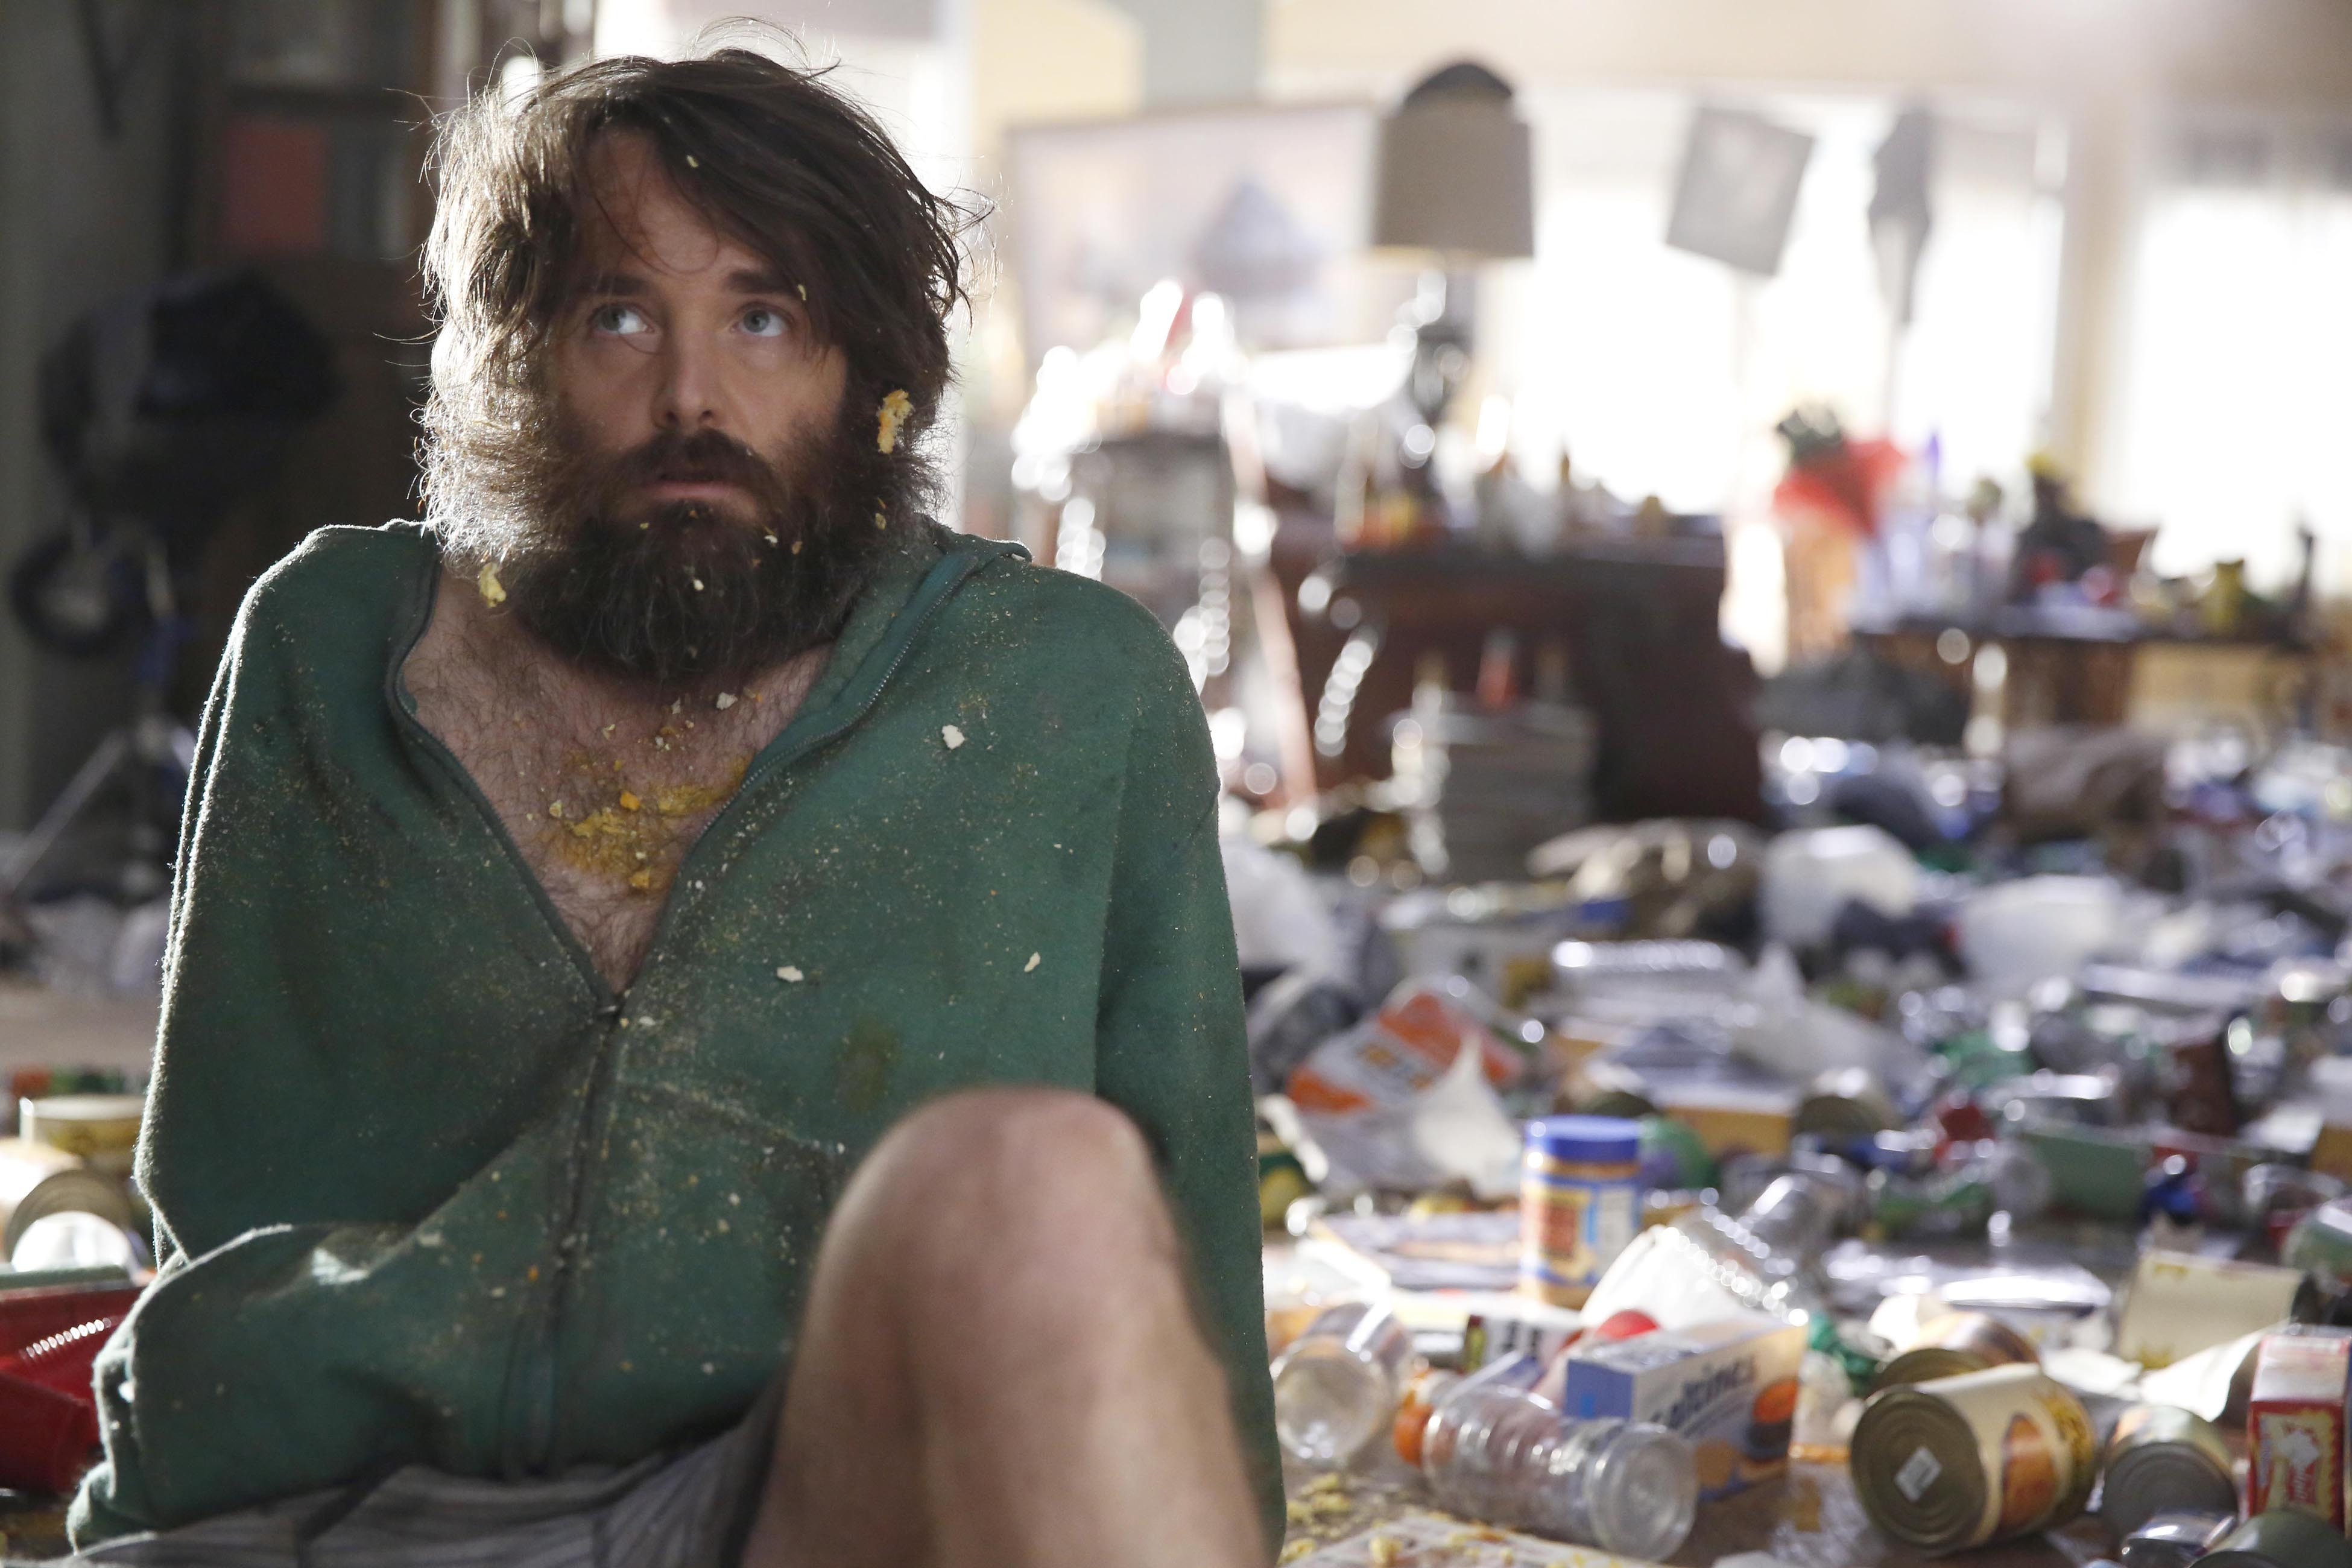 The Last Man on Earth: Season 2 promo 1